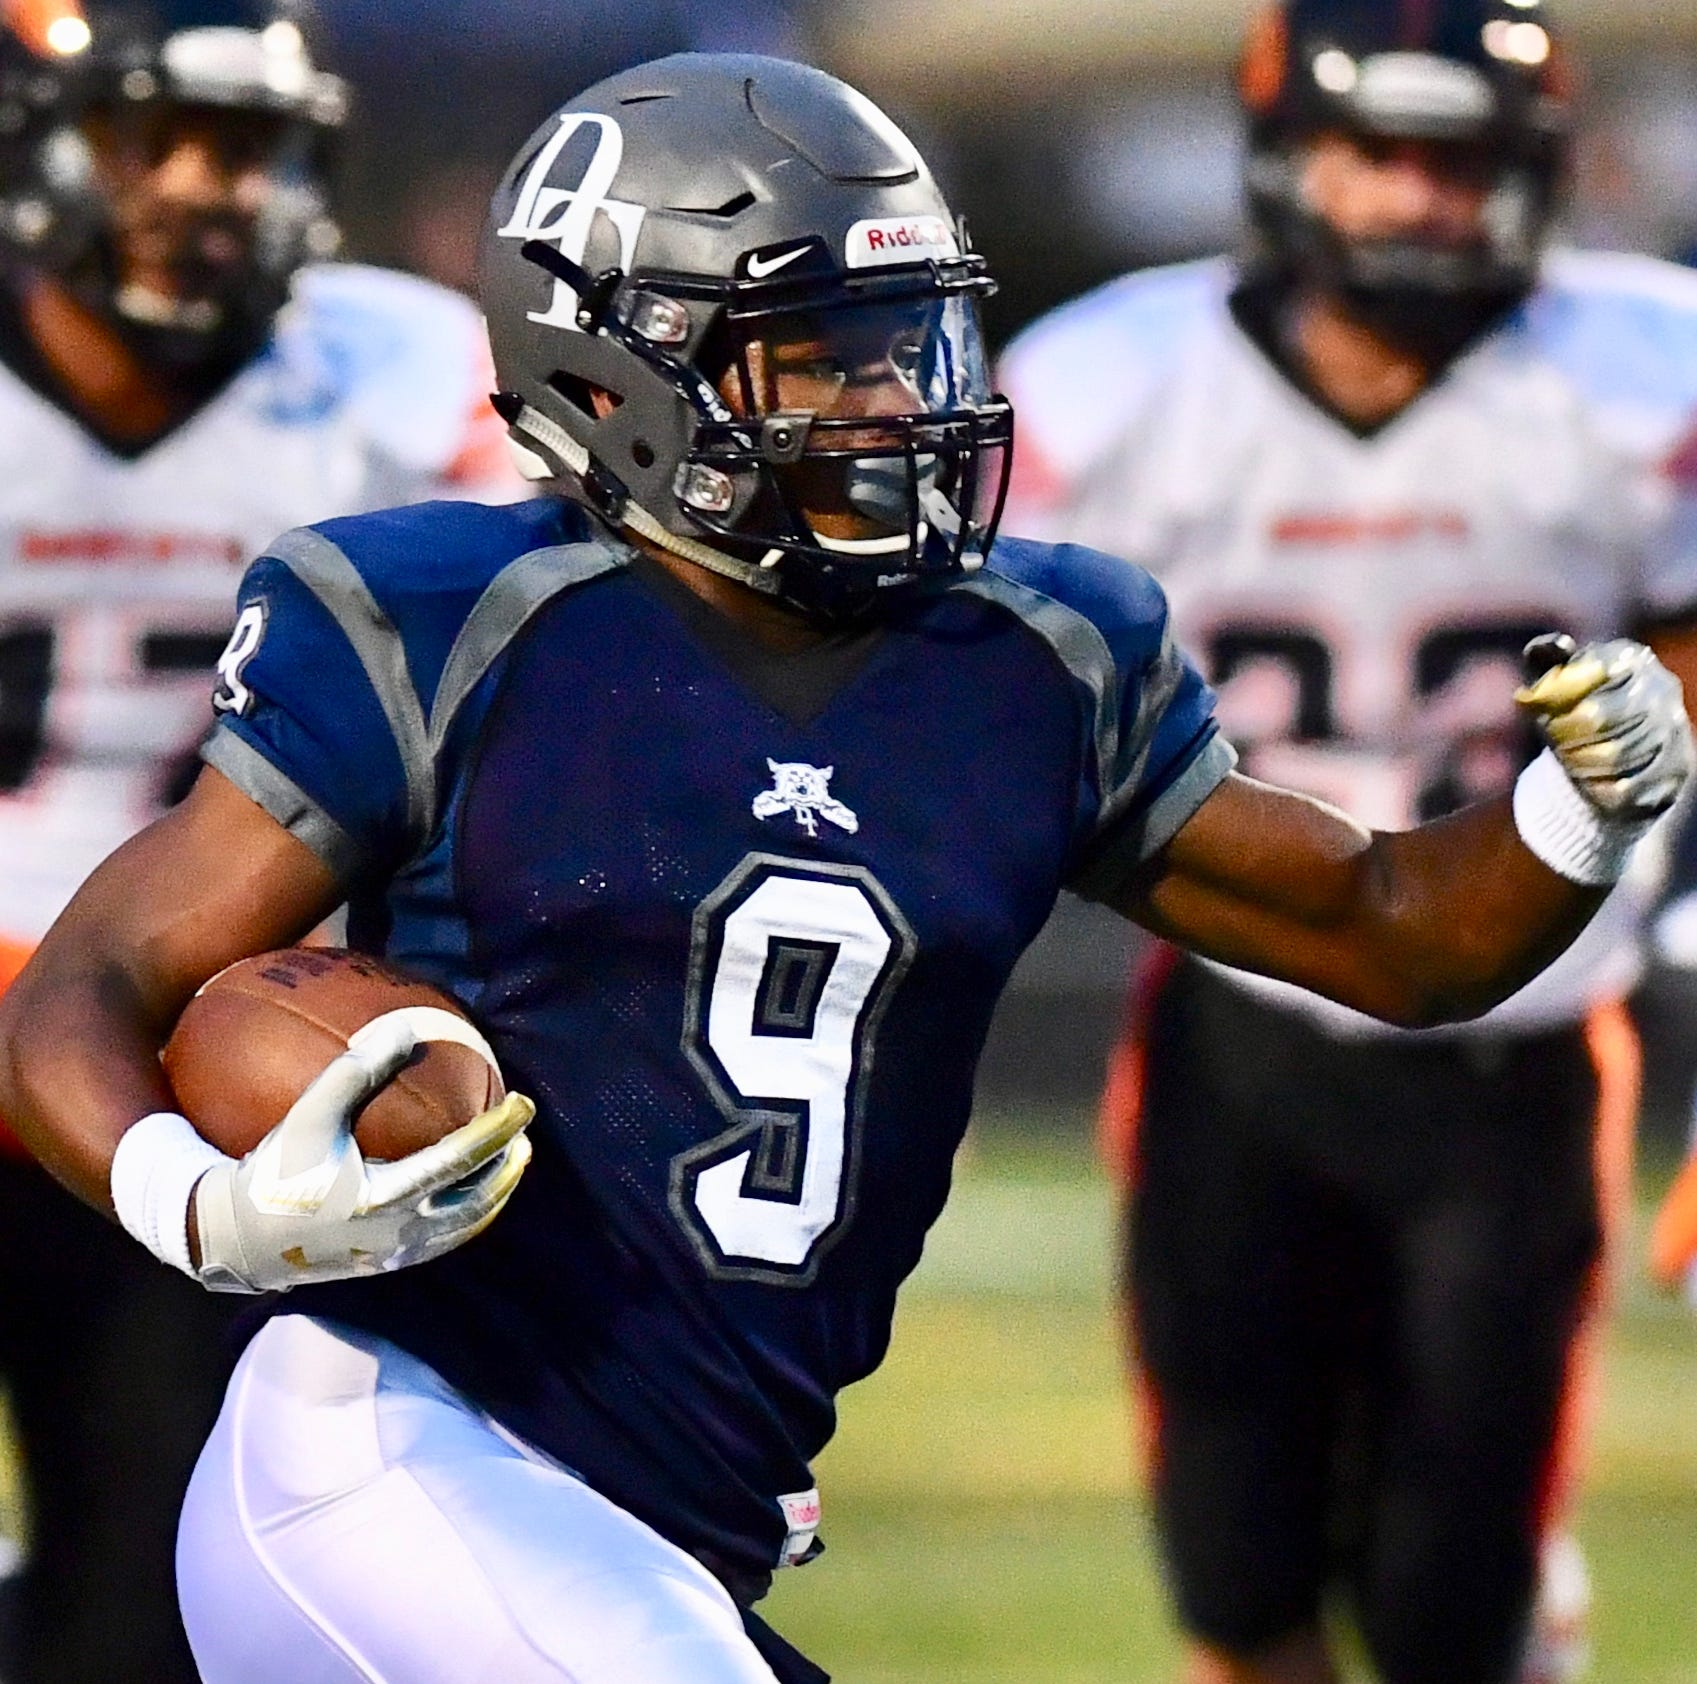 Dallastown RB Nyzair Smith runs for 321 yards, 4 touchdowns in win over Northeastern